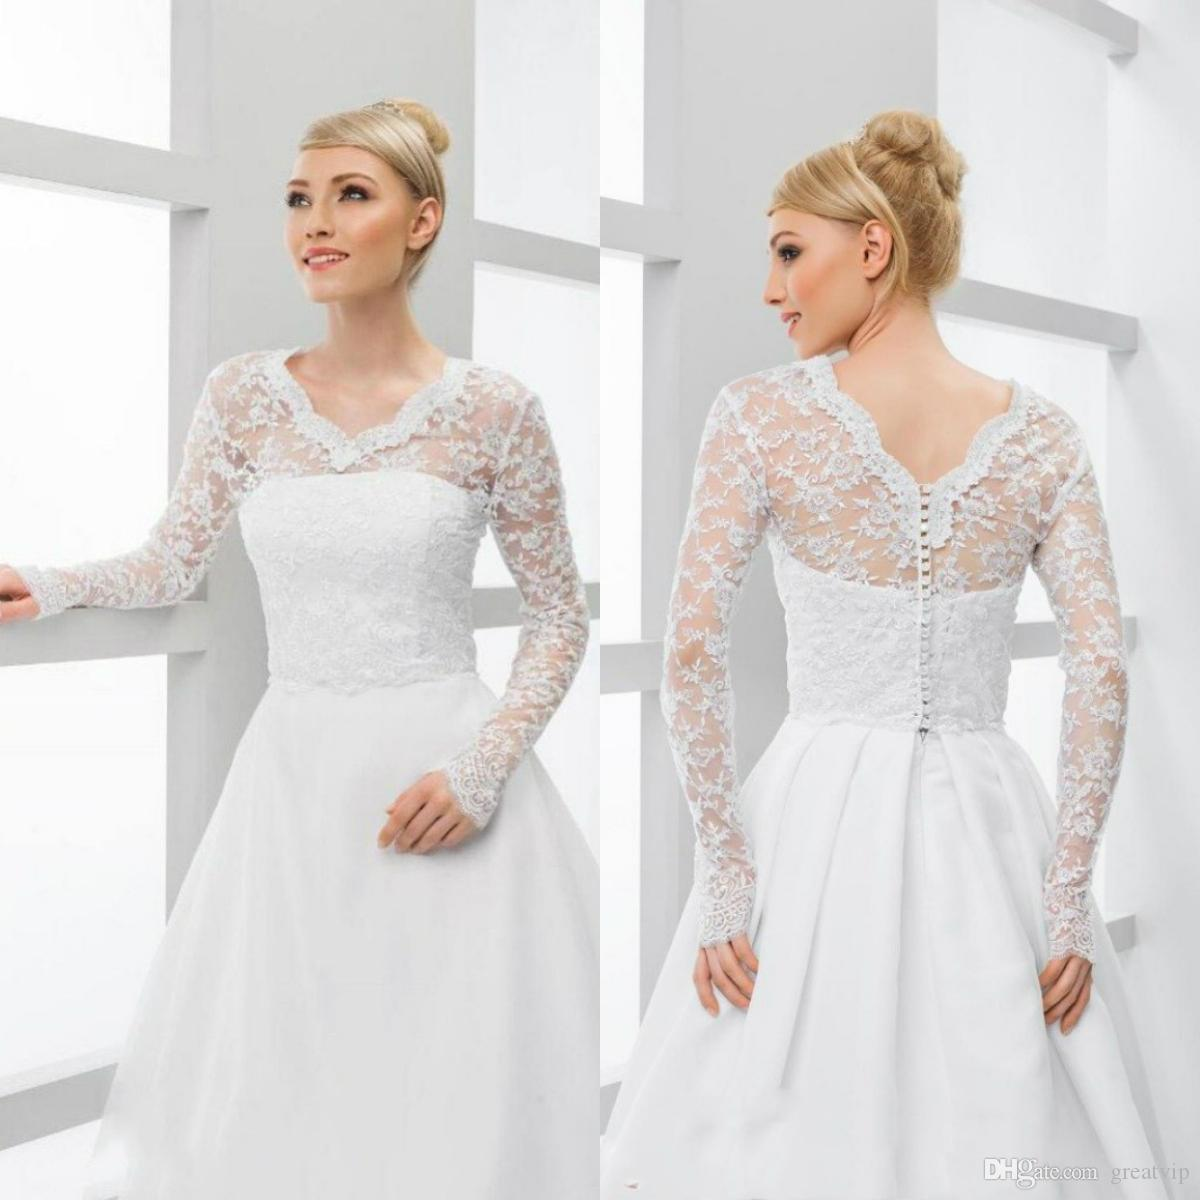 1d03a1aa32d 2019 Lace Bridal Wraps Jackets White V Neck Long Sleeve Wedding Boleros  Shawls For Wedding Dresses Bridal Gowns Large Size From Greatvip